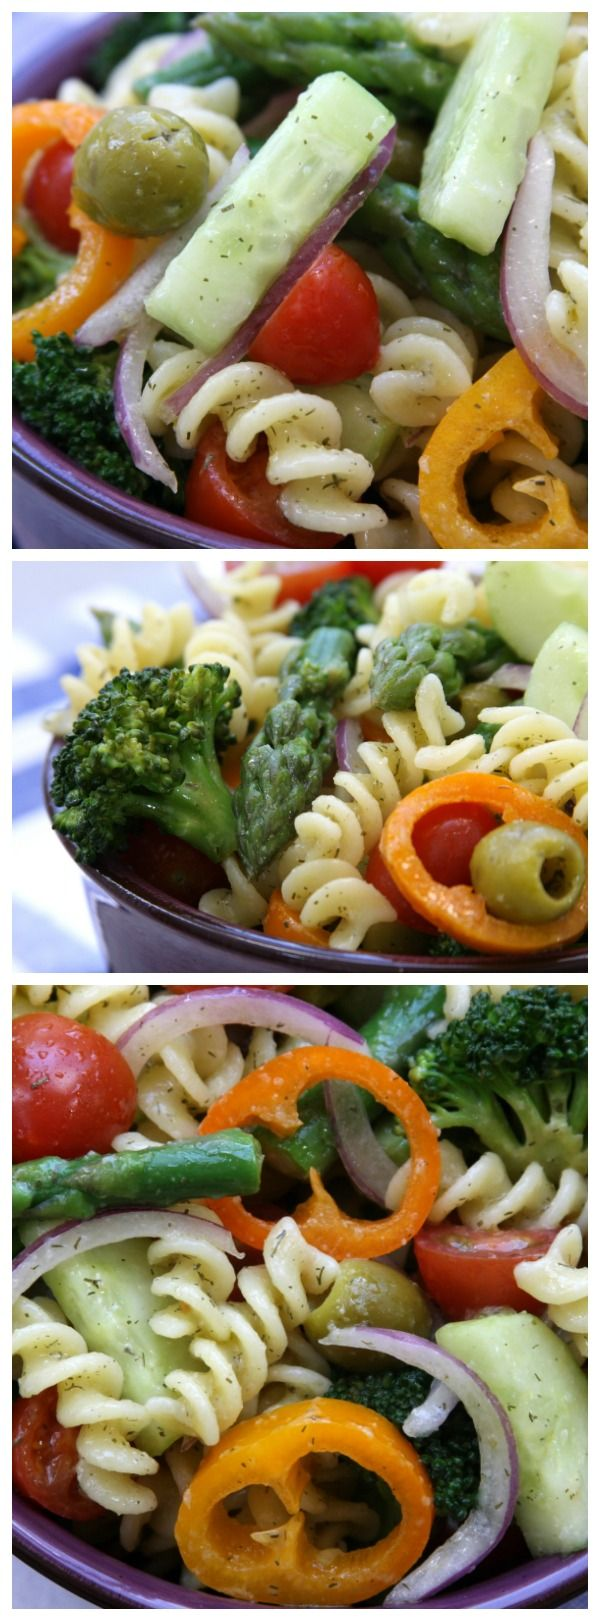 Springtime Pasta Salad recipe is an easy, light, savory and yet filling dish. Such a fun and tasty way to get your veggies in that both little ones and adults love. Perfect for cold lunches during the week.